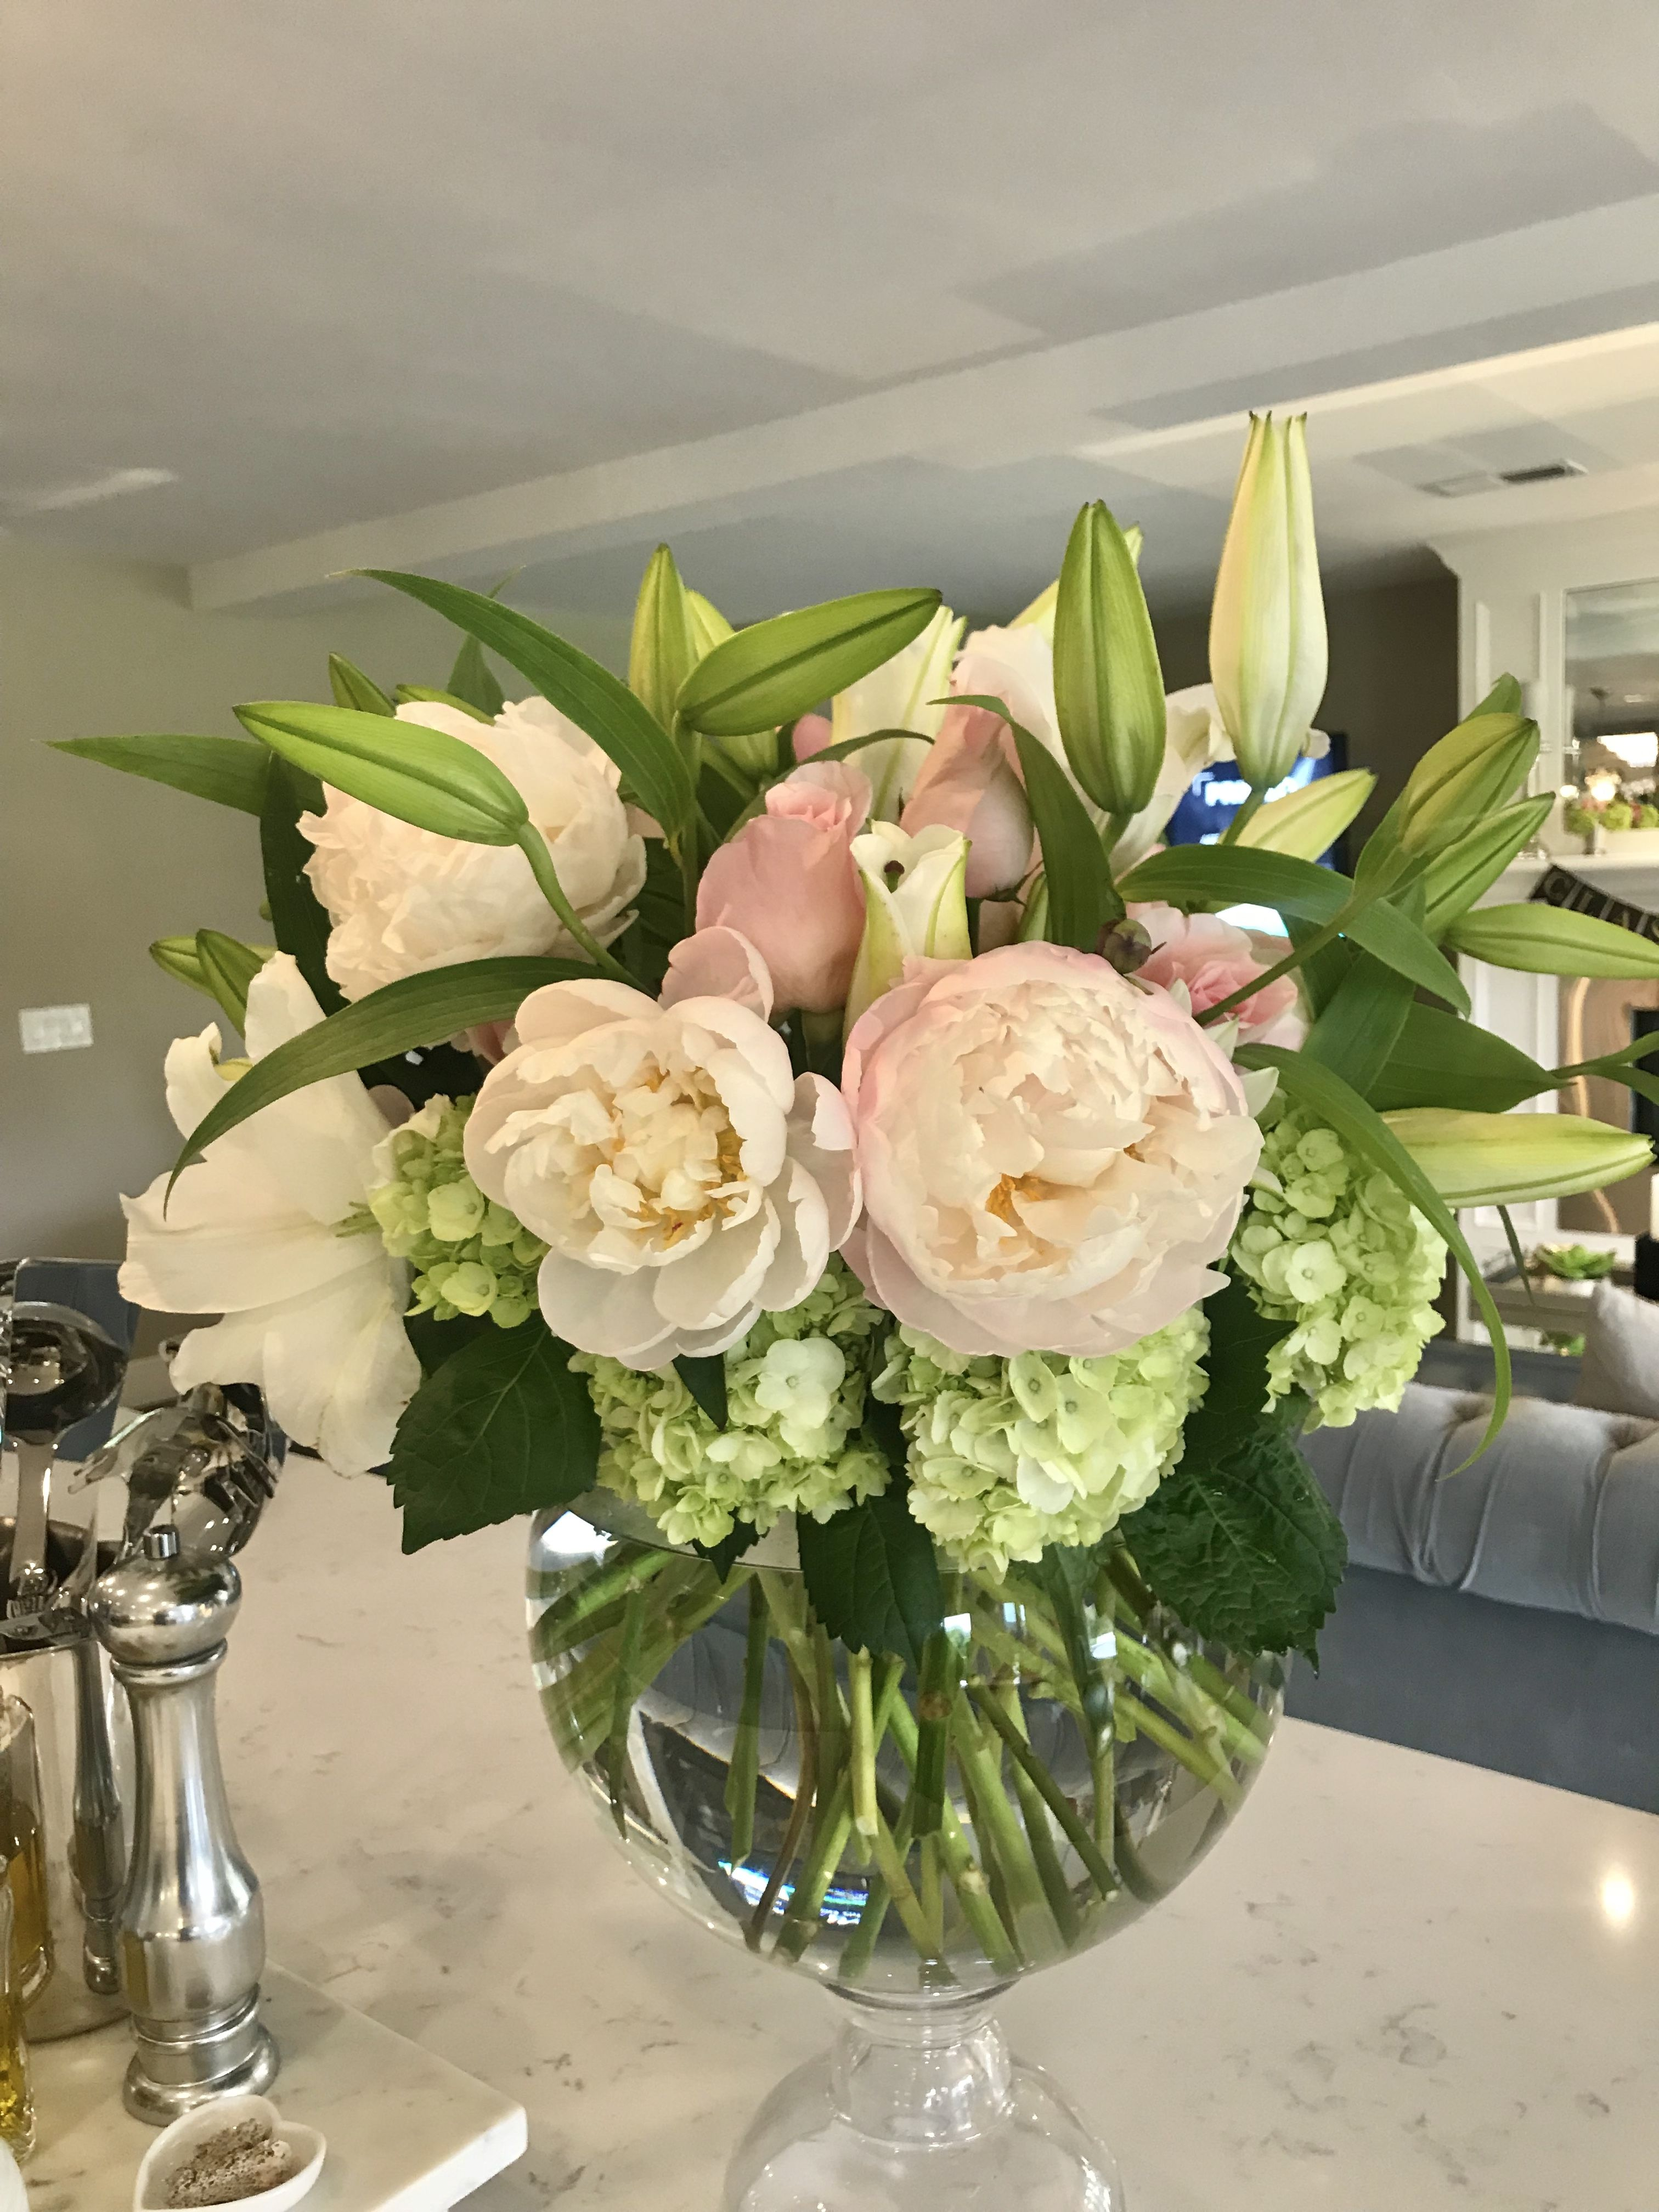 Peonies Roses Casablanca Lilies And Hydrangeas Make For A Perfect Arrangement Wendy Pacheco Flower Arrangements Beautiful Vase Beautiful Flowers